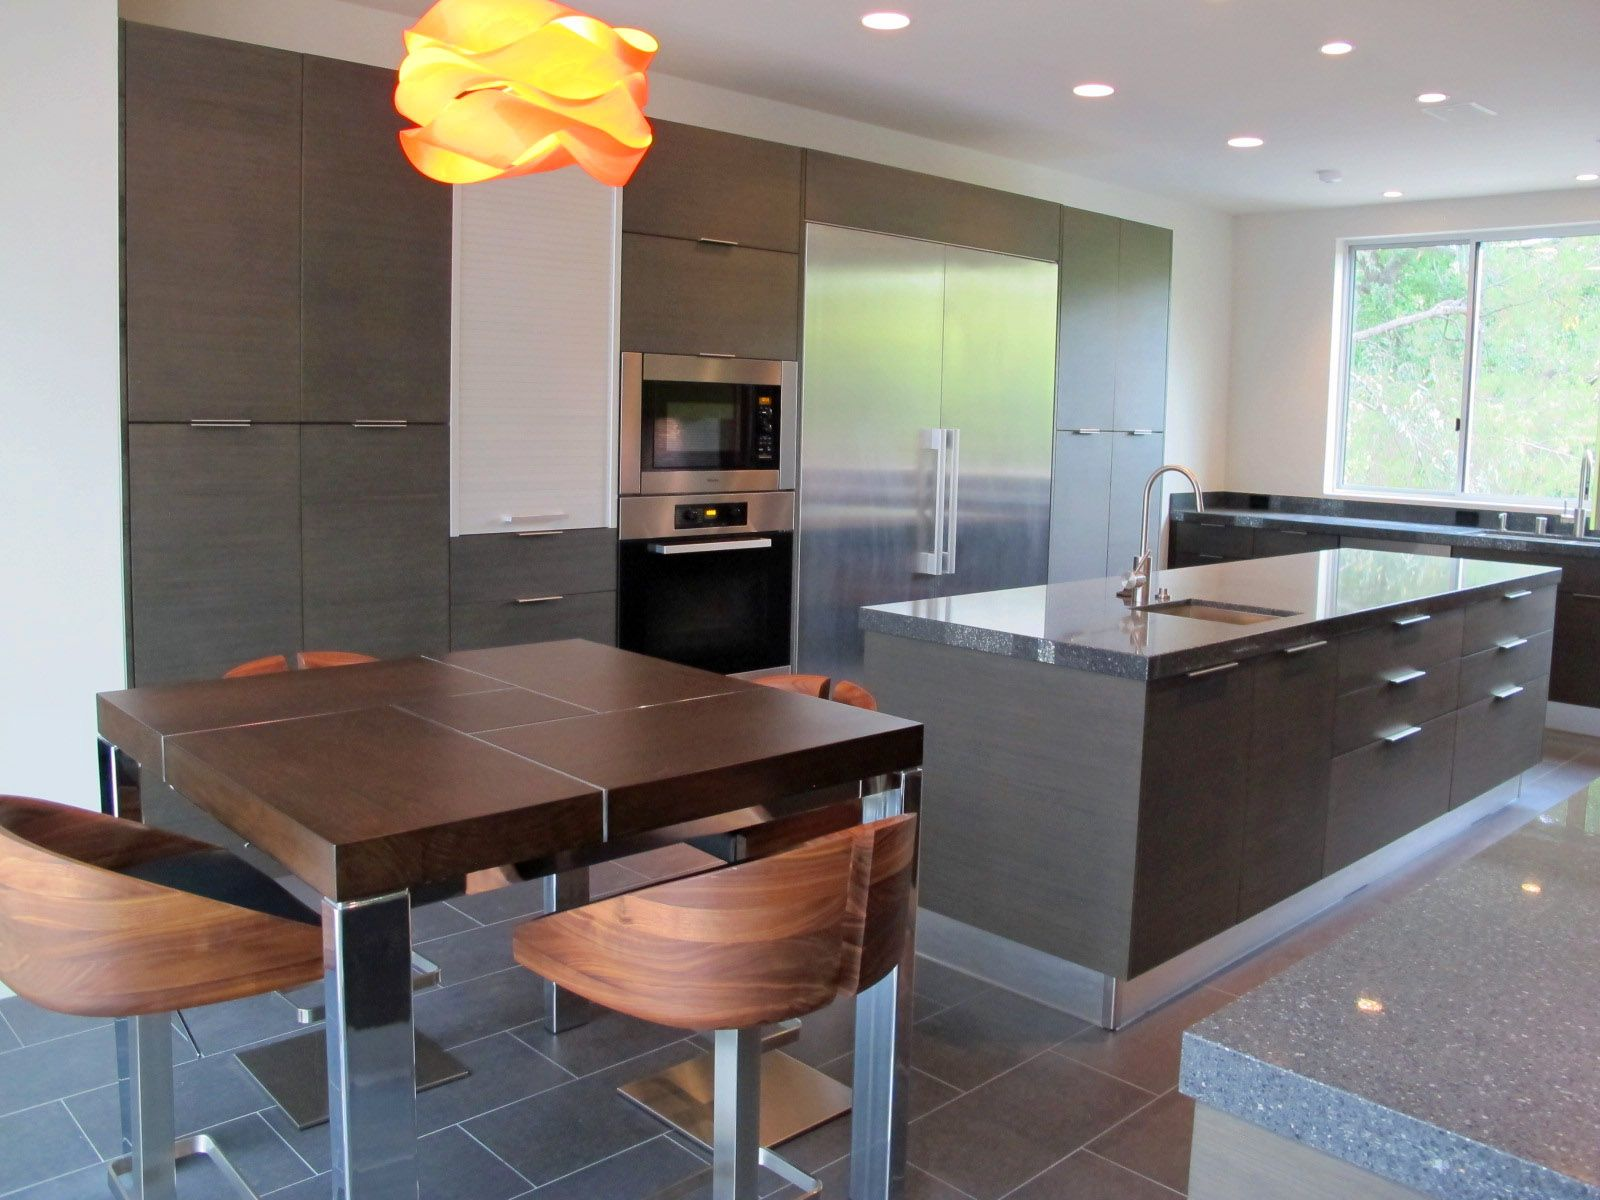 At new form kitchen we design the custom closets that reflect your